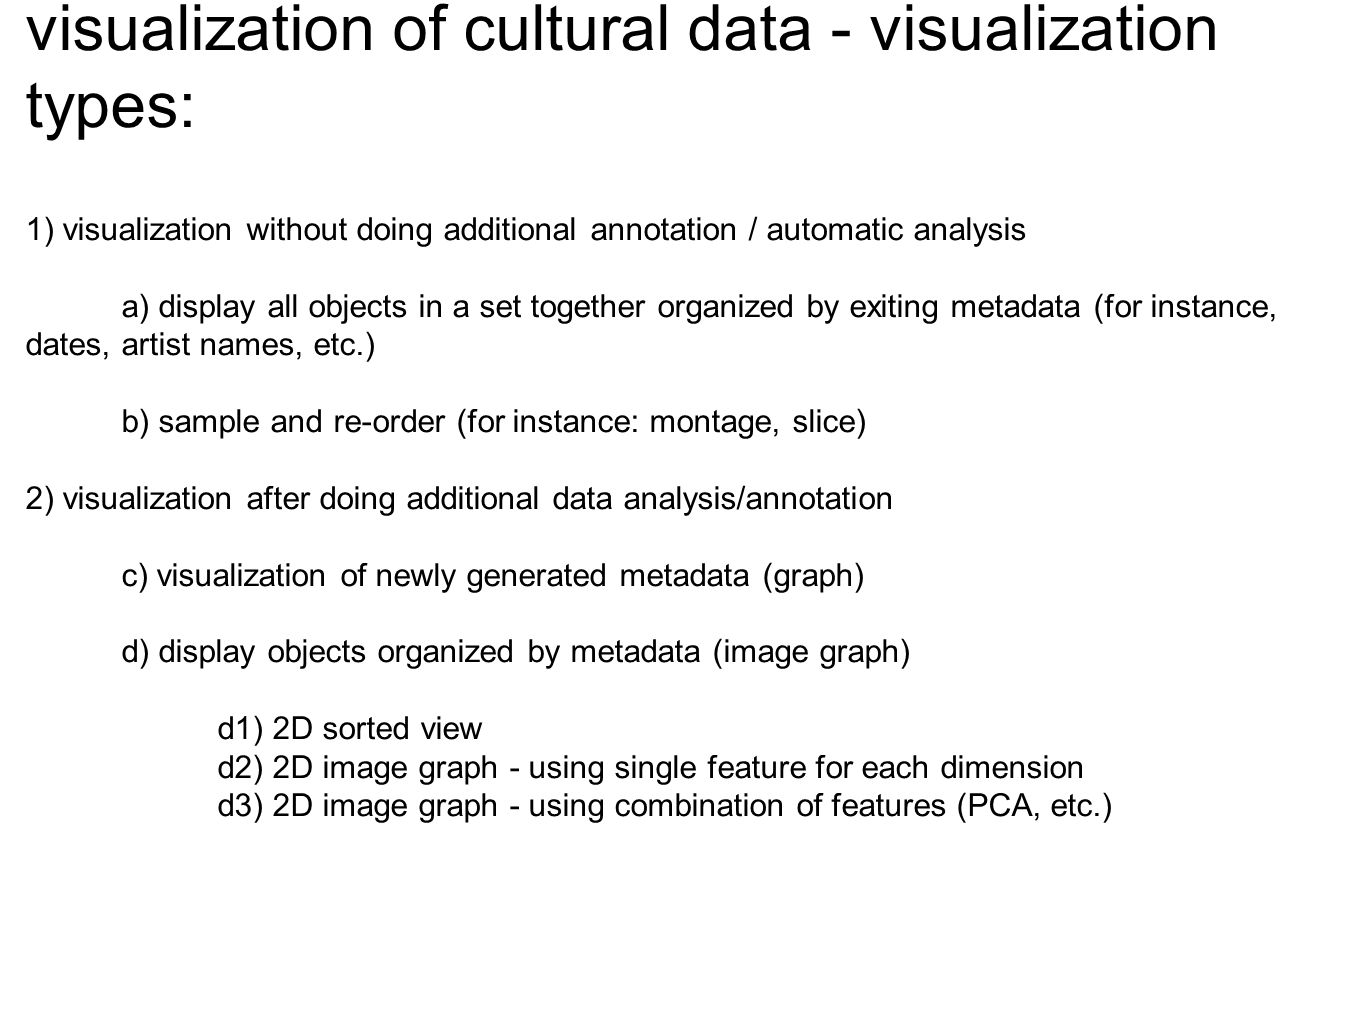 visualization of cultural data - visualization types: 1) visualization without doing additional annotation / automatic analysis a) display all objects in a set together organized by exiting metadata (for instance, dates, artist names, etc.) b) sample and re-order (for instance: montage, slice) 2) visualization after doing additional data analysis/annotation c) visualization of newly generated metadata (graph) d) display objects organized by metadata (image graph) d1) 2D sorted view d2) 2D image graph - using single feature for each dimension d3) 2D image graph - using combination of features (PCA, etc.)